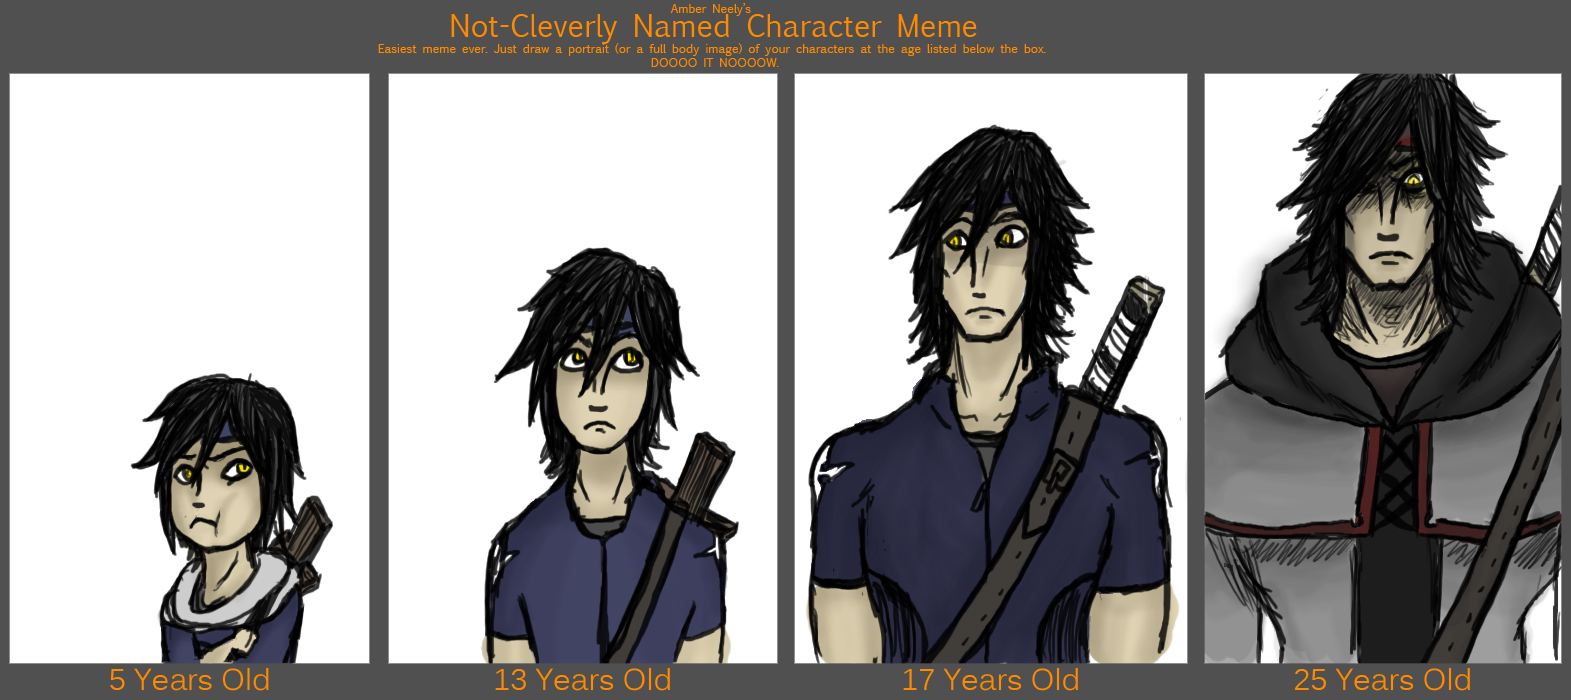 Anime Characters Age : Character age meme related keywords